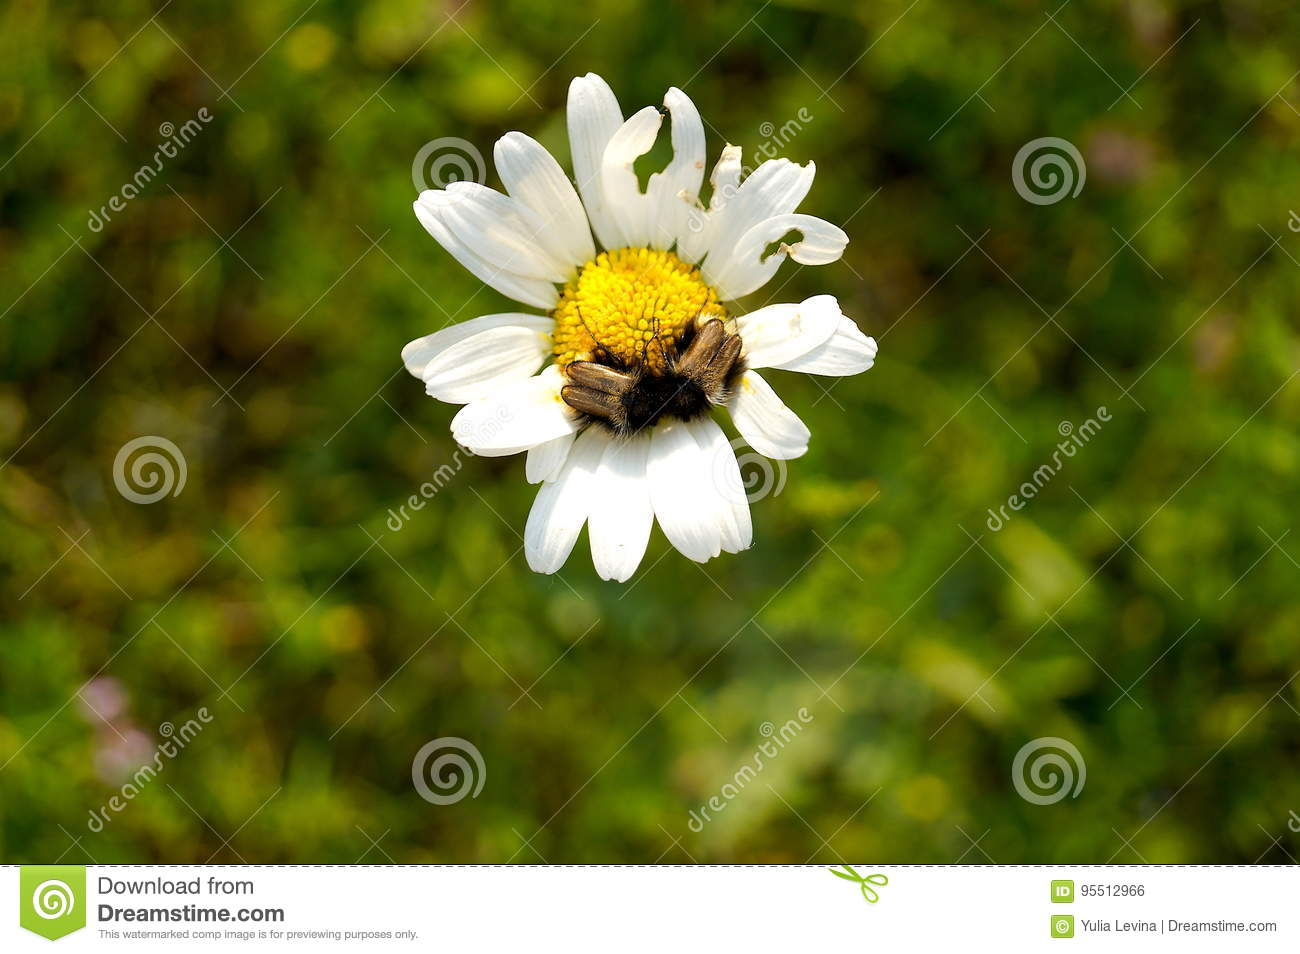 Daisies Are Simple Yet Sophisticated And Are Some Of The Most